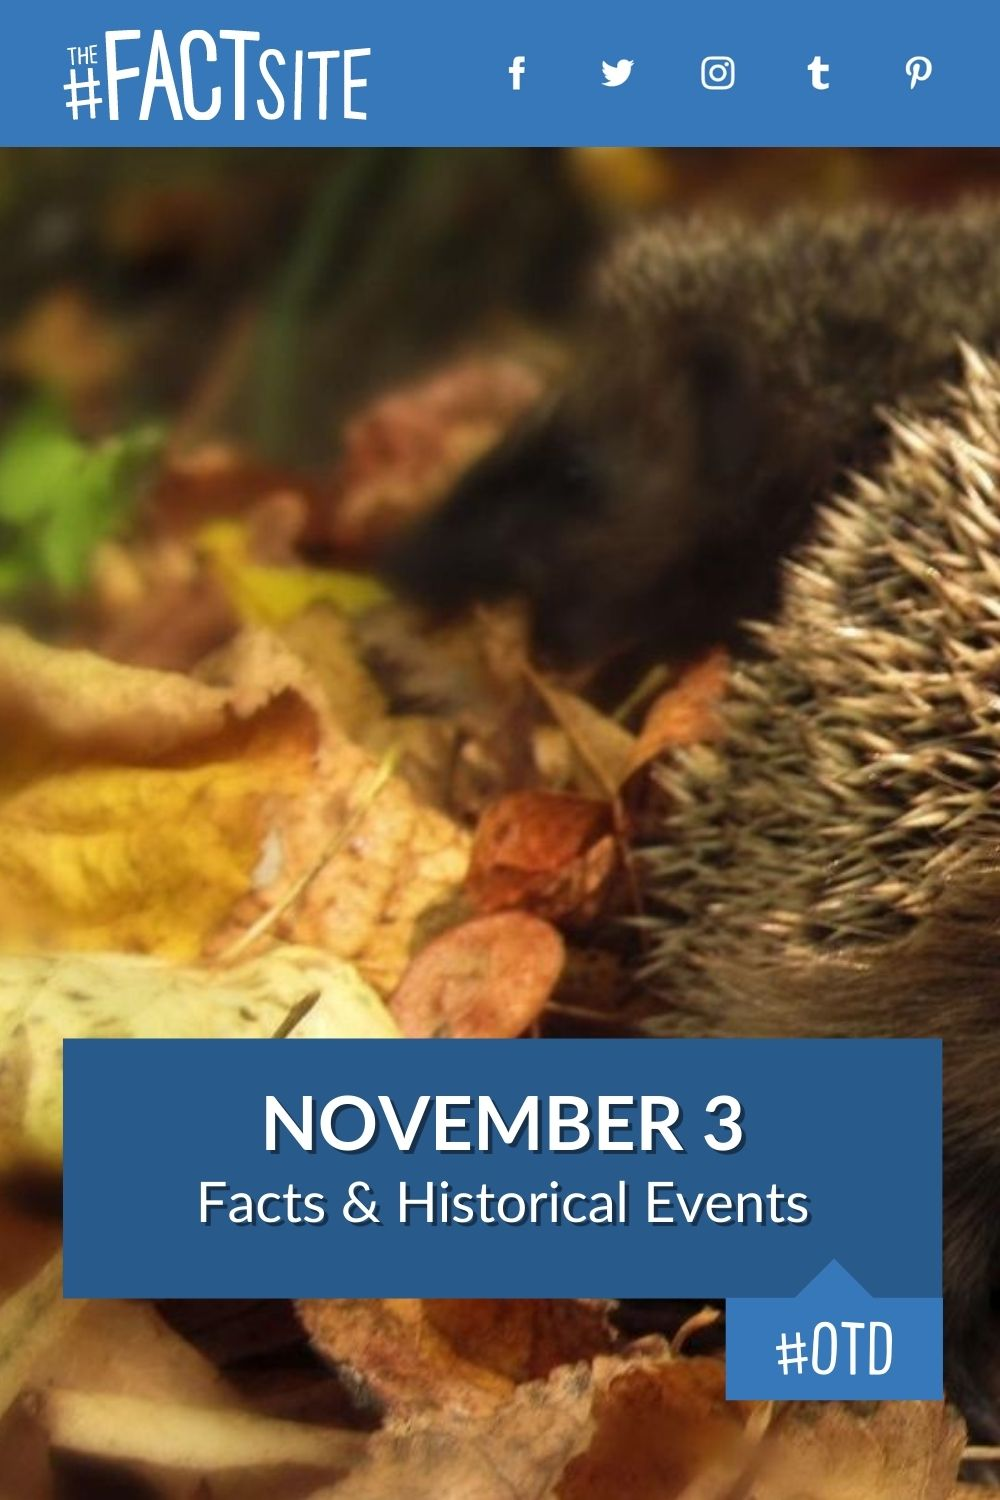 Facts & Historic Events That Happened on November 3